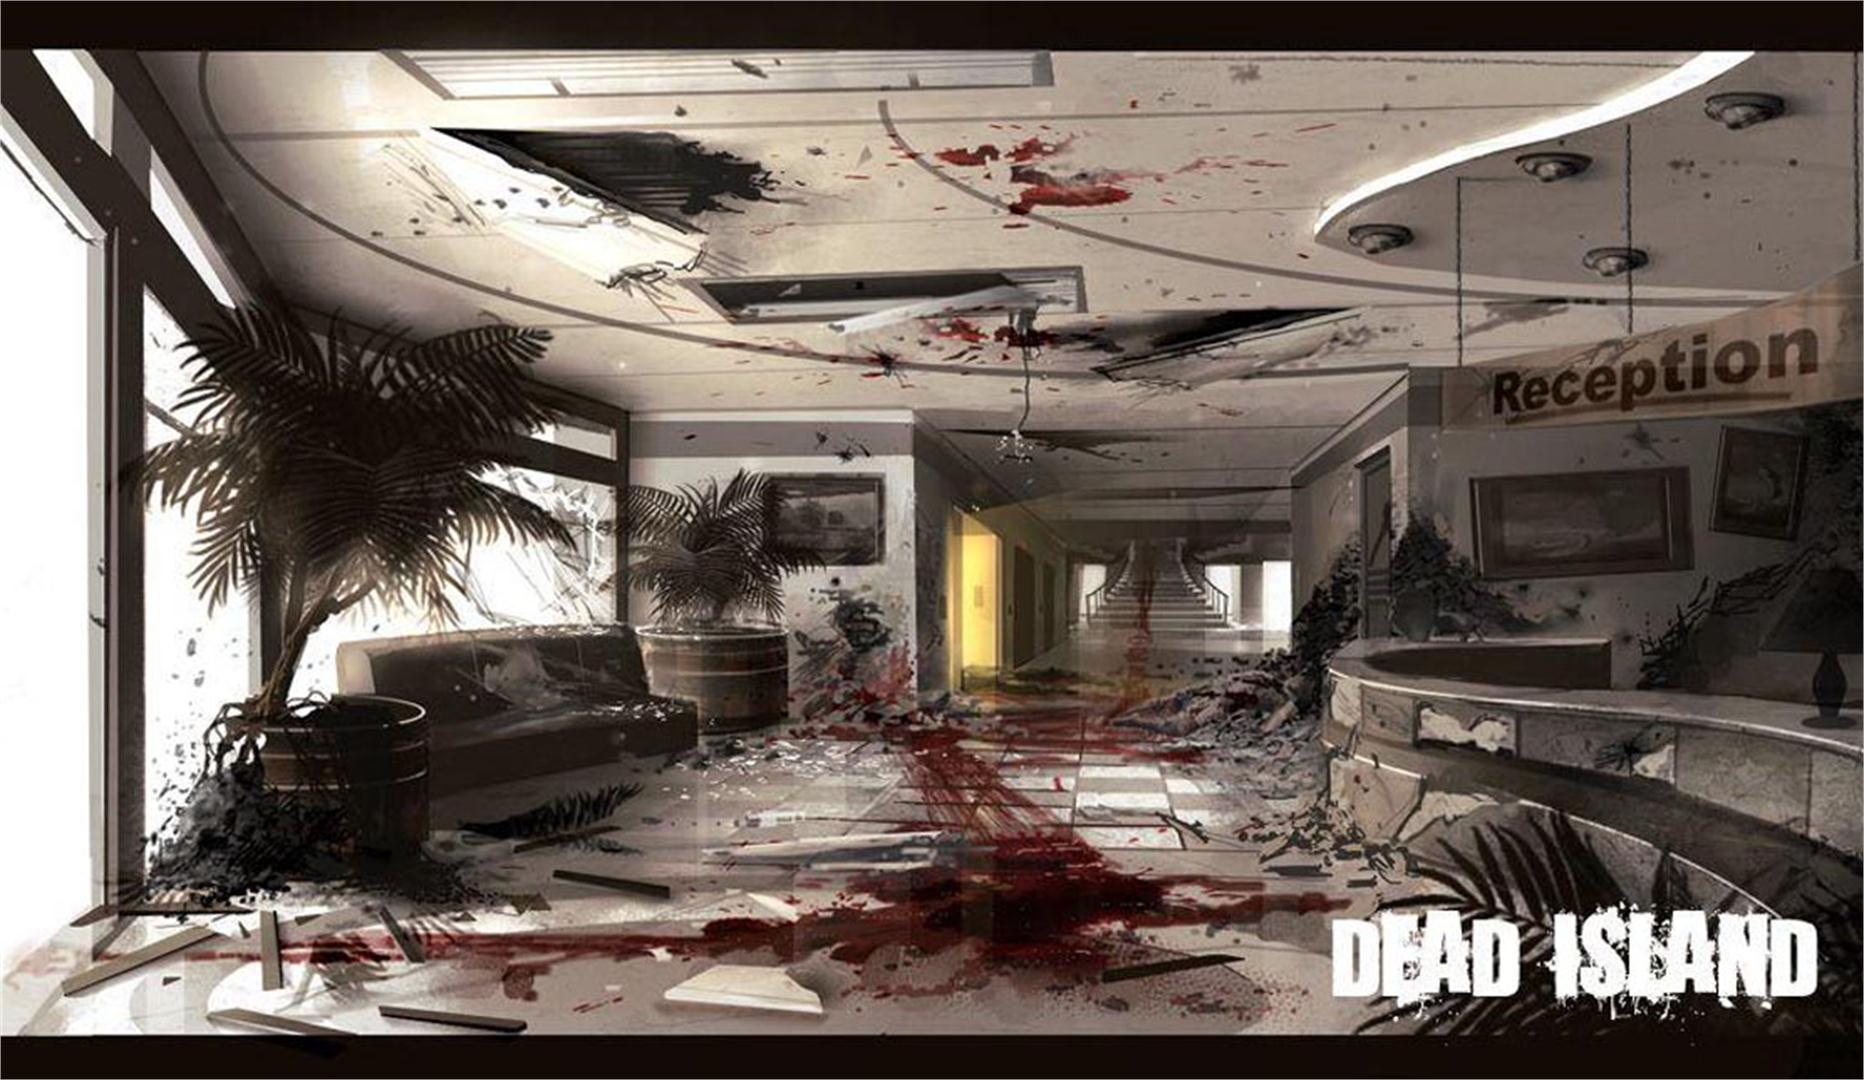 3d Virus Wallpaper Zombie Desktop Wallpaper 401ak47 A Zombie Survival Plan